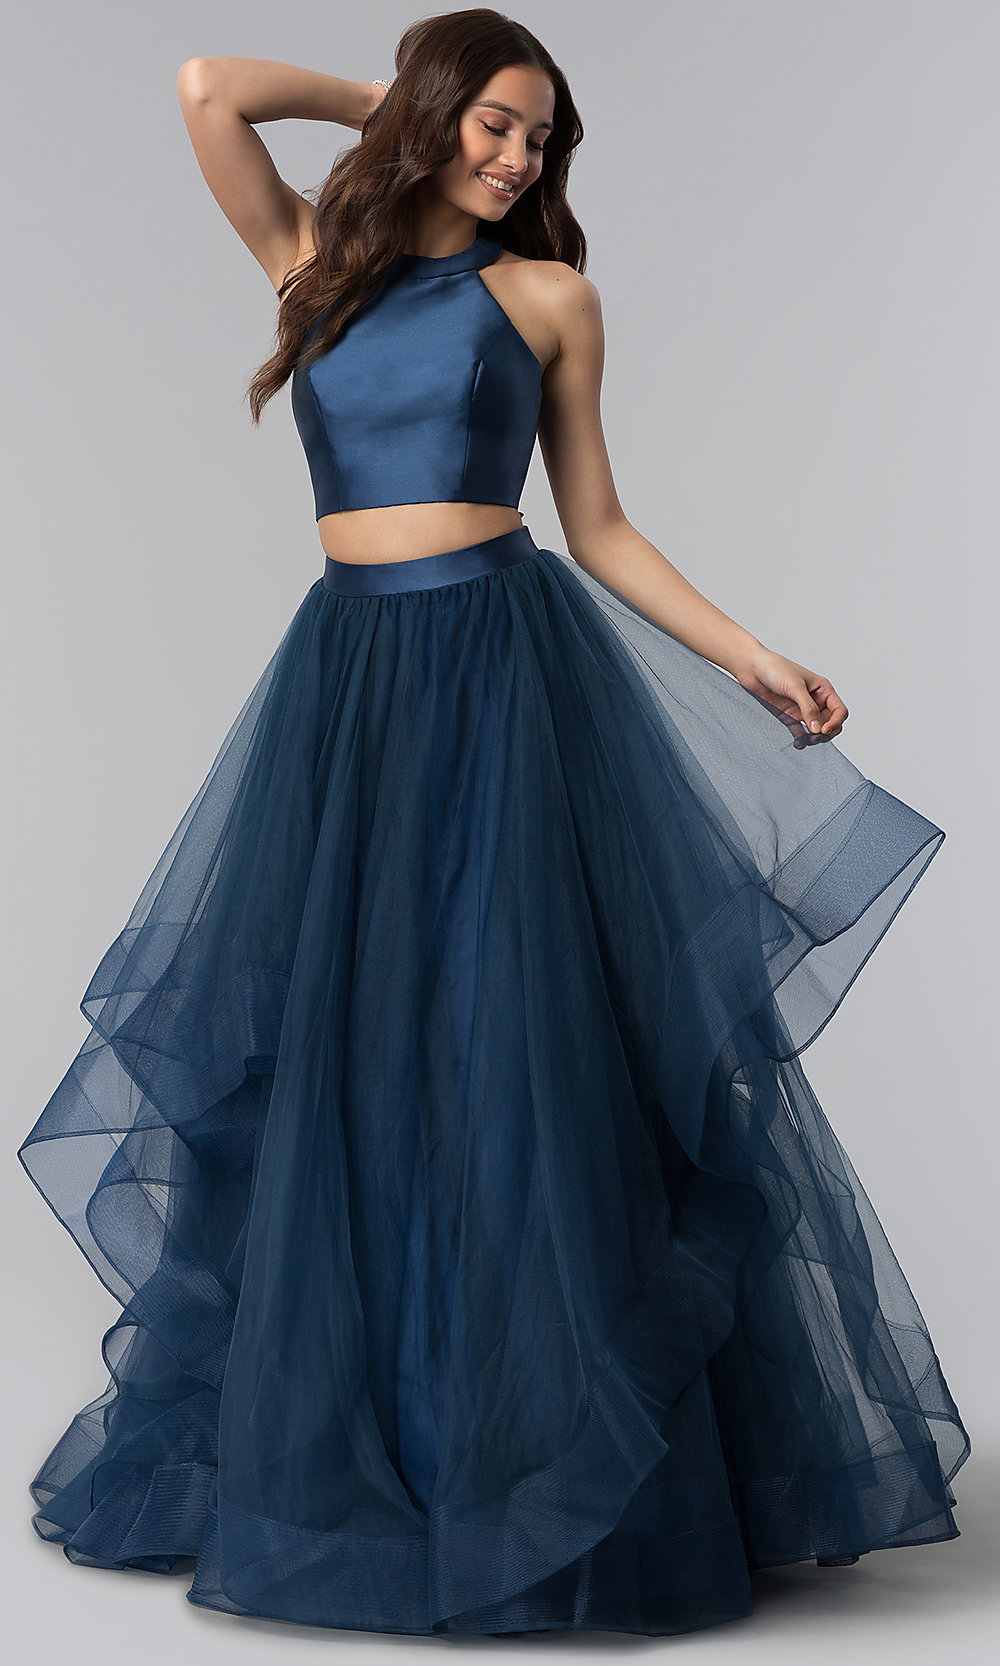 41f651d4a8cf Long Two-Piece Prom Dress with Open Back and High Neck